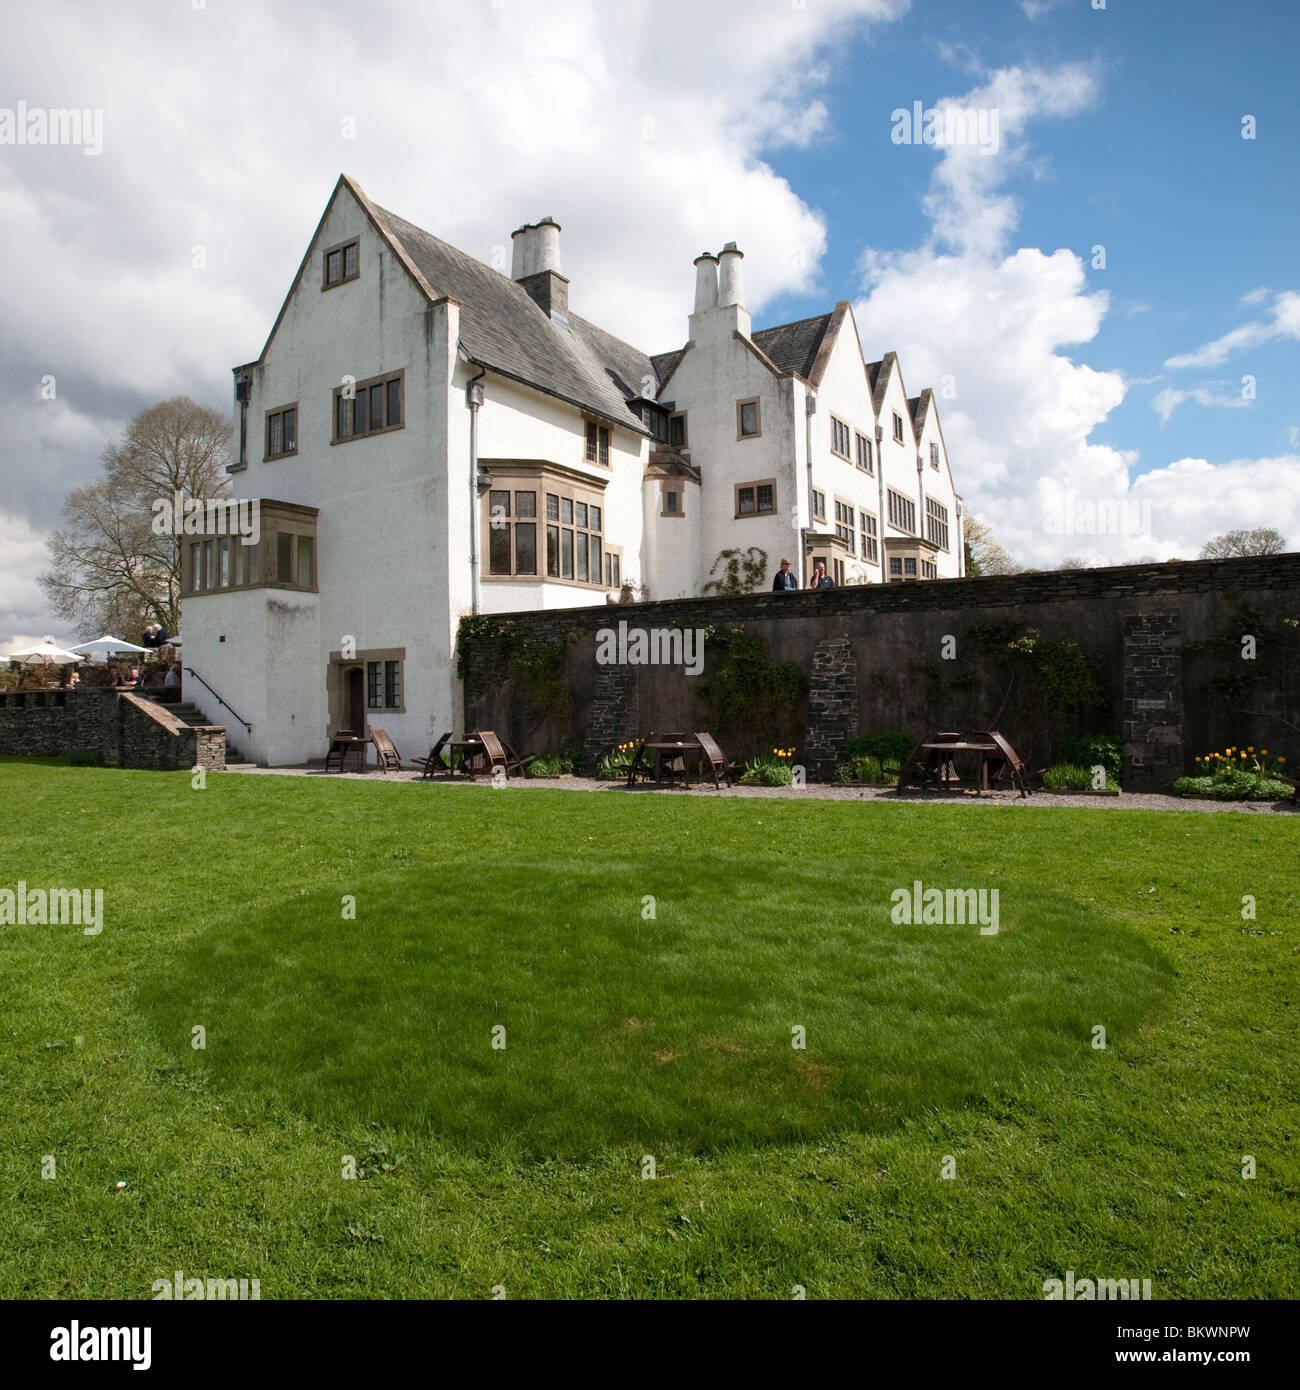 Blackwell The Arts And Crafts House Near Bowness On Windermere Cumbria Designed By Architect Mackay Hugh Baillie Scott 1900